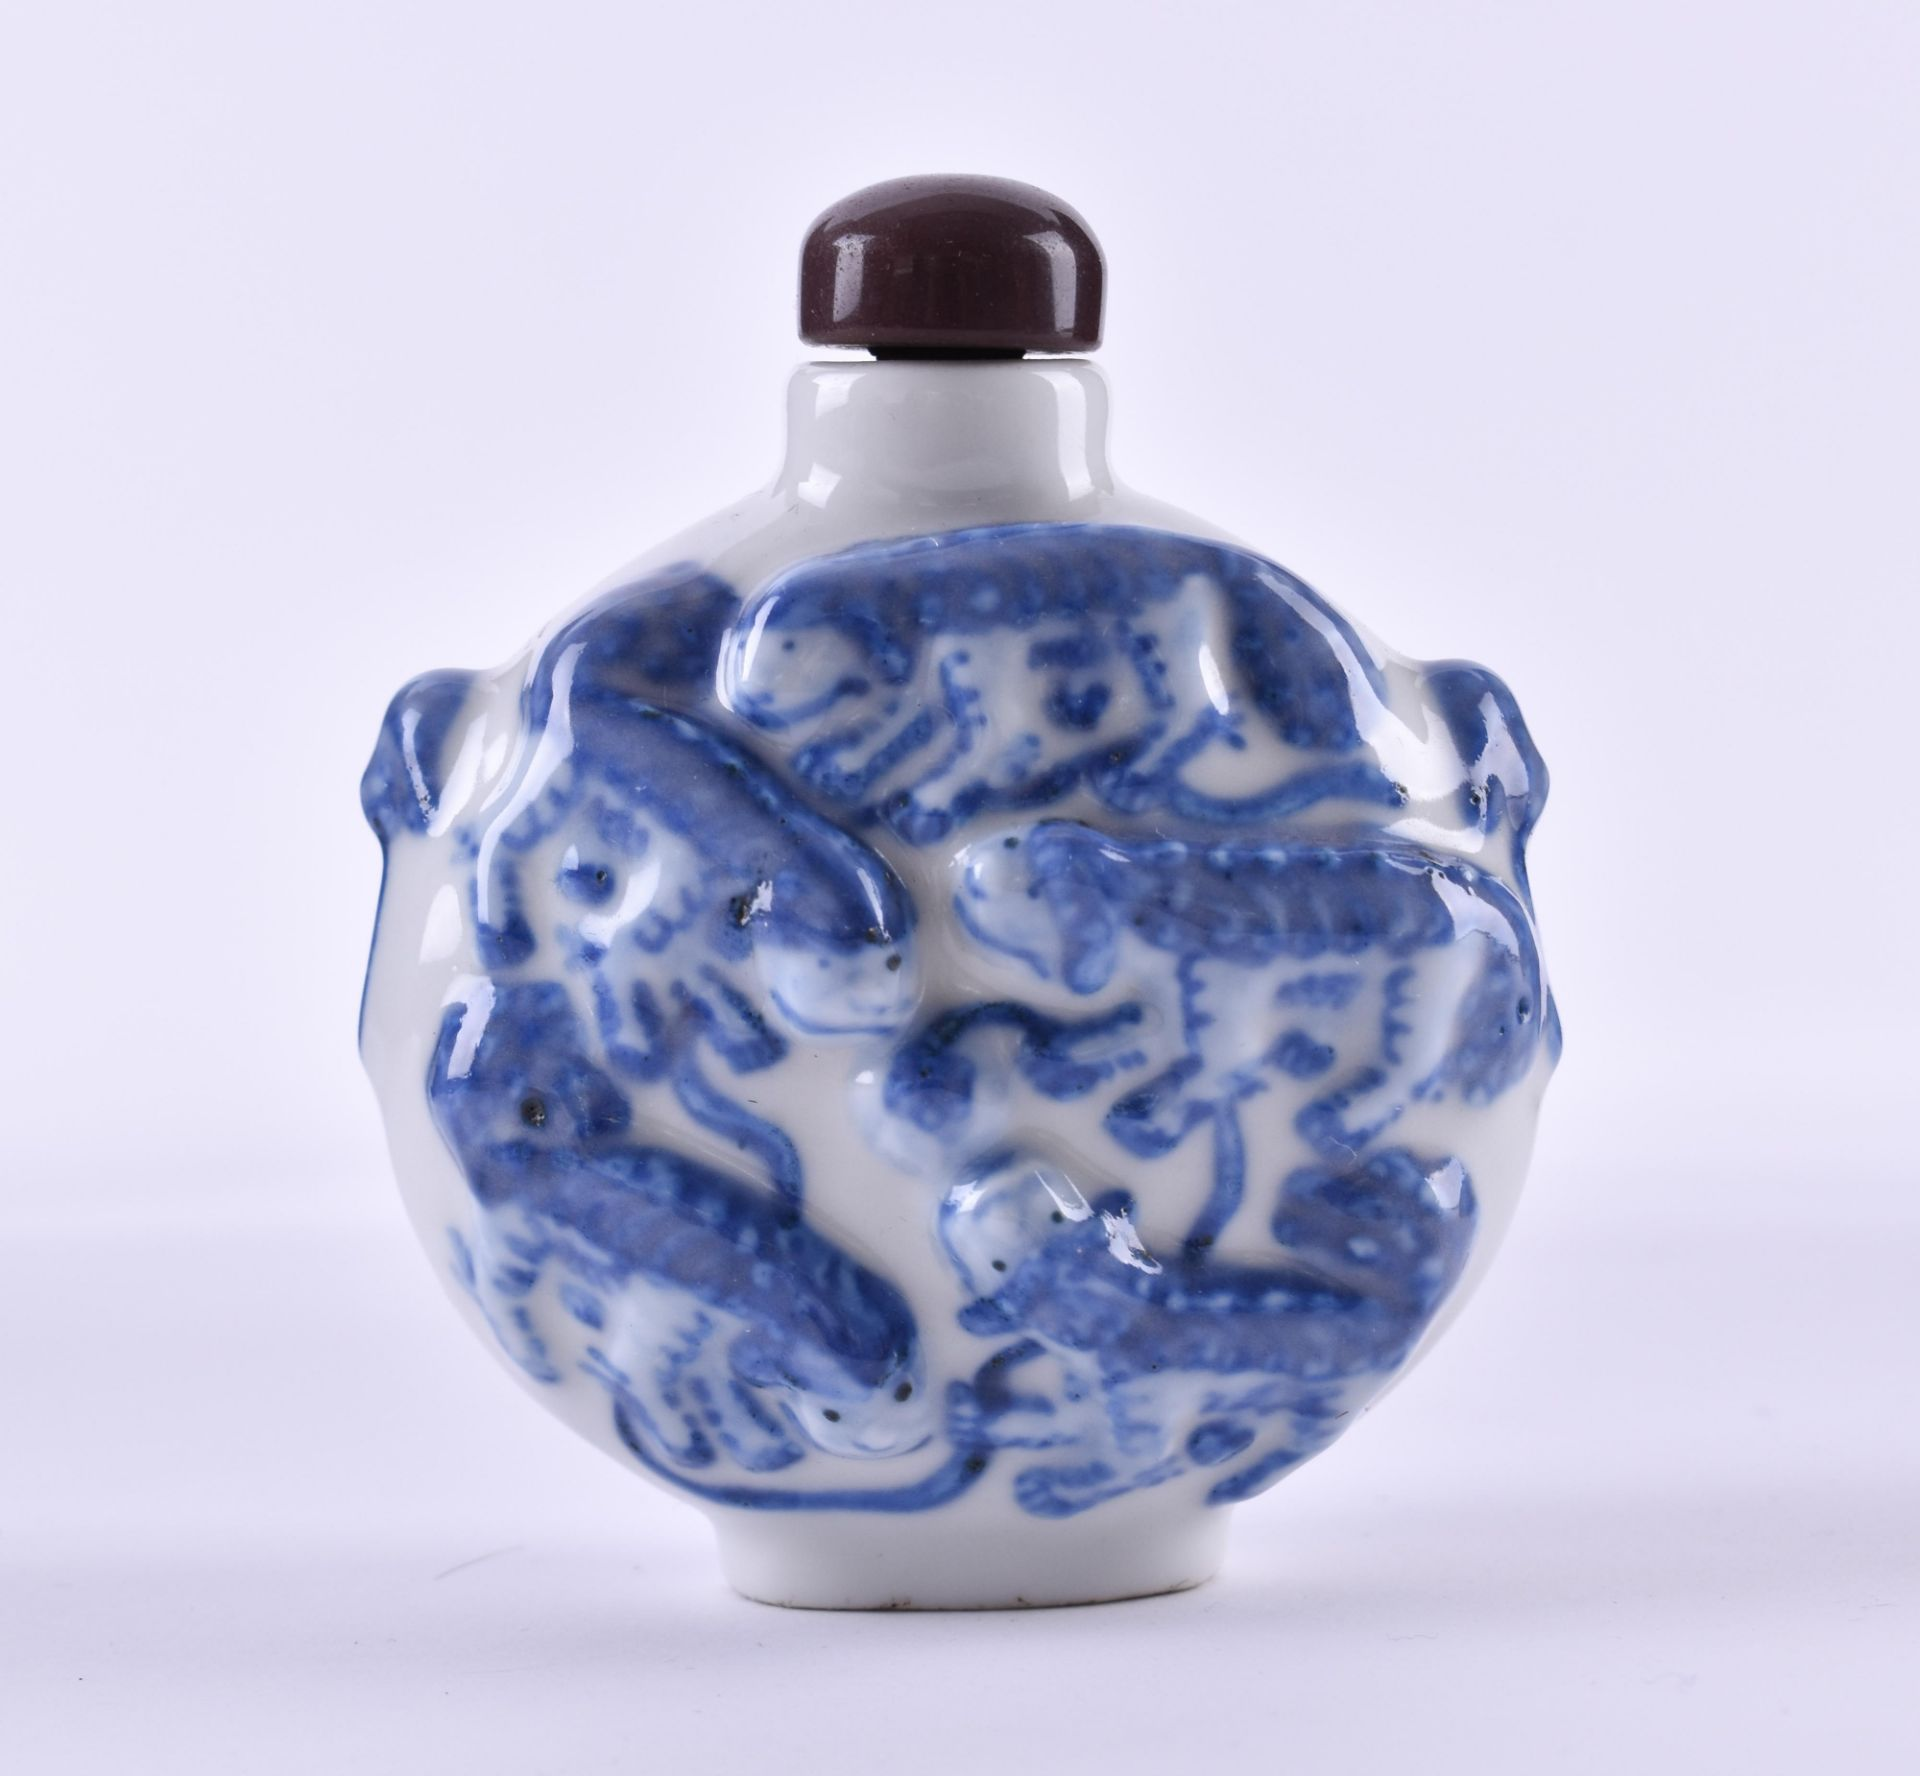 Snuffbottle China Qing dynasty